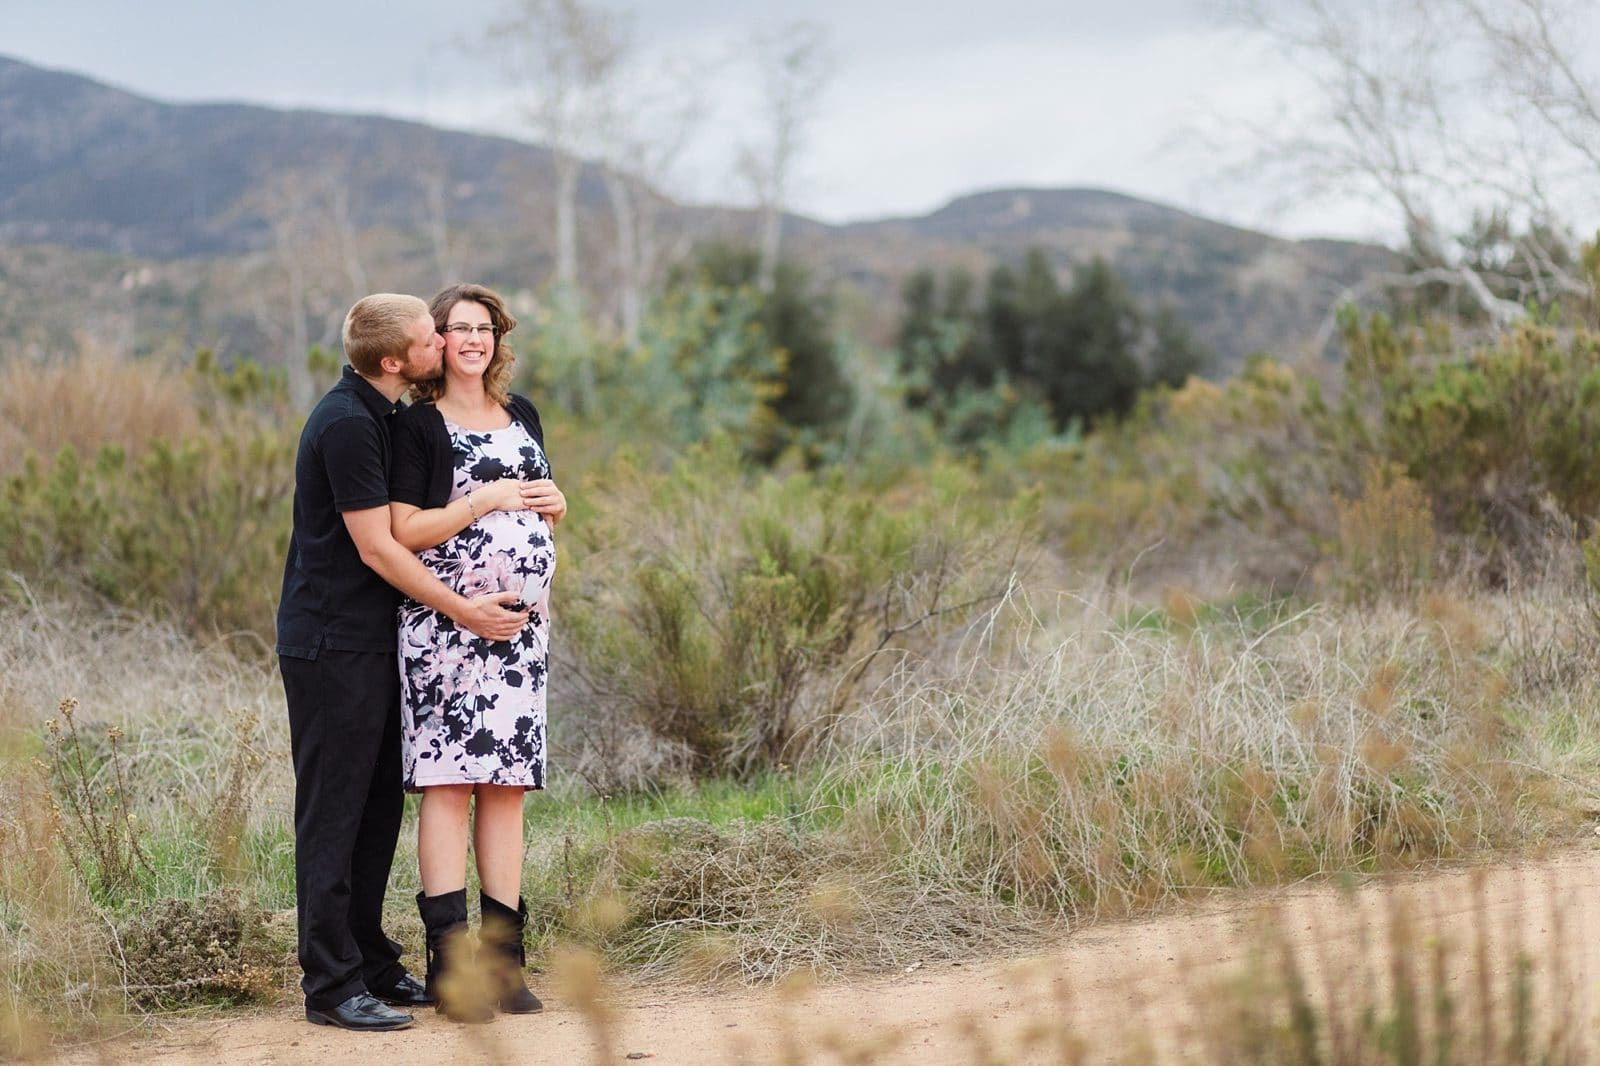 San Diego Pregnancy Photos | San Diego Photographers